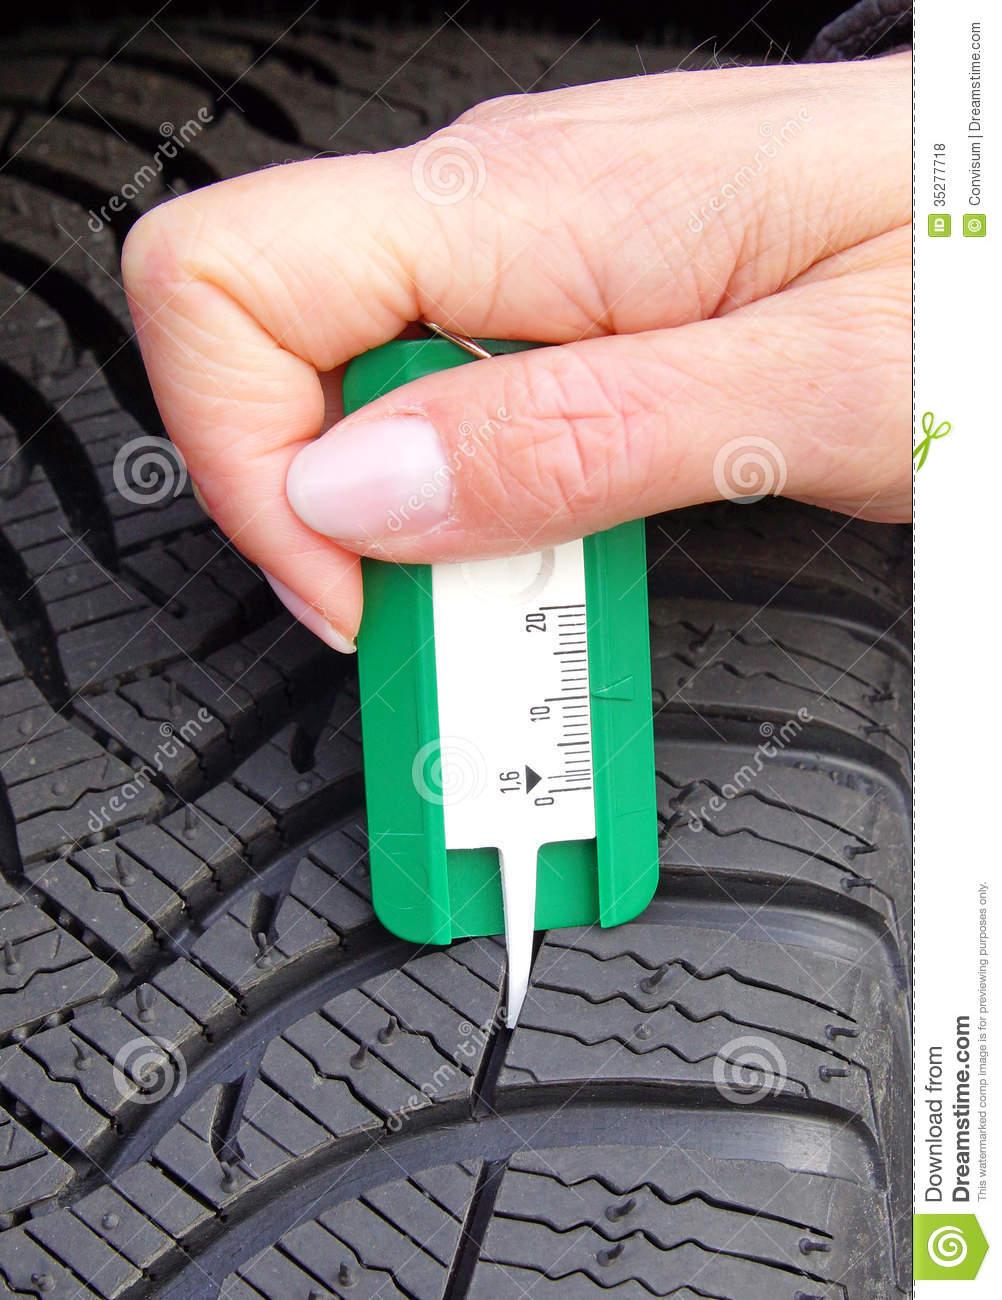 Tire Tread Measurement Tool : Measuring tread in winter tyre royalty free stock photos